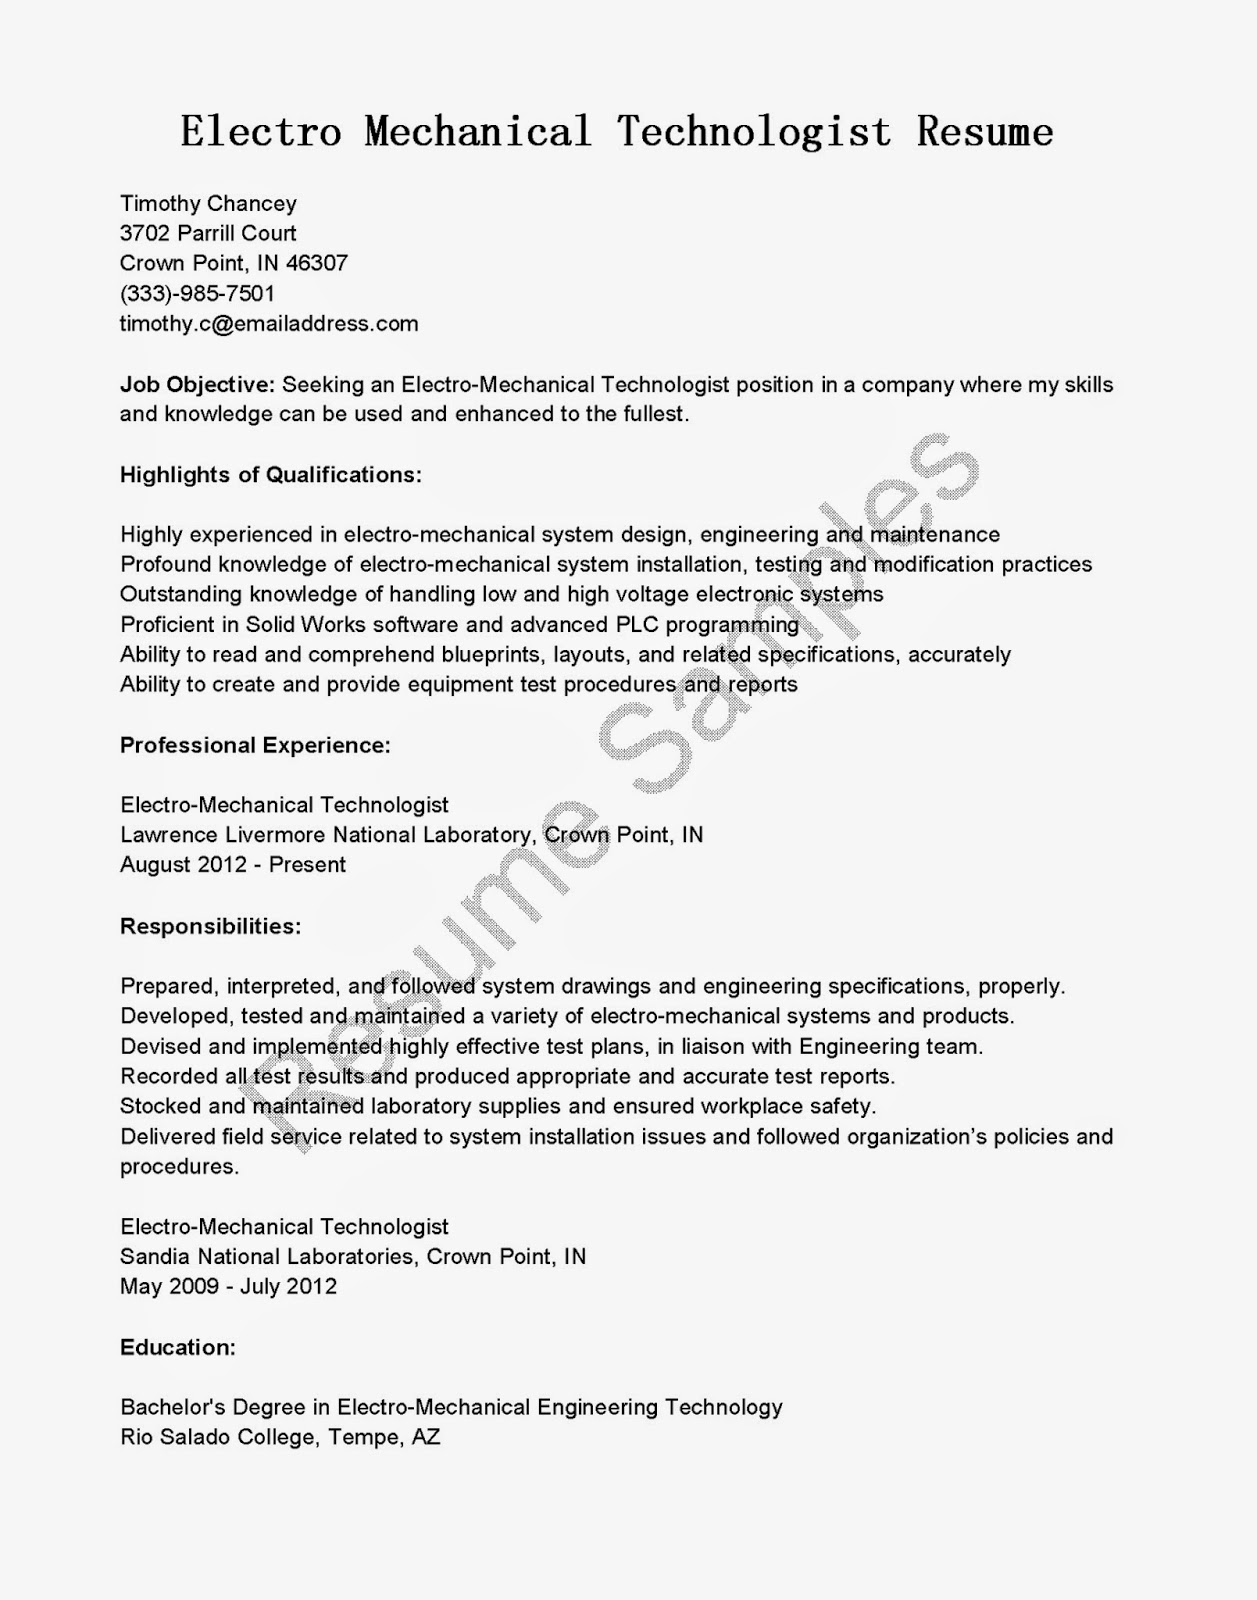 resume samples  electro mechanical technologist resume sample